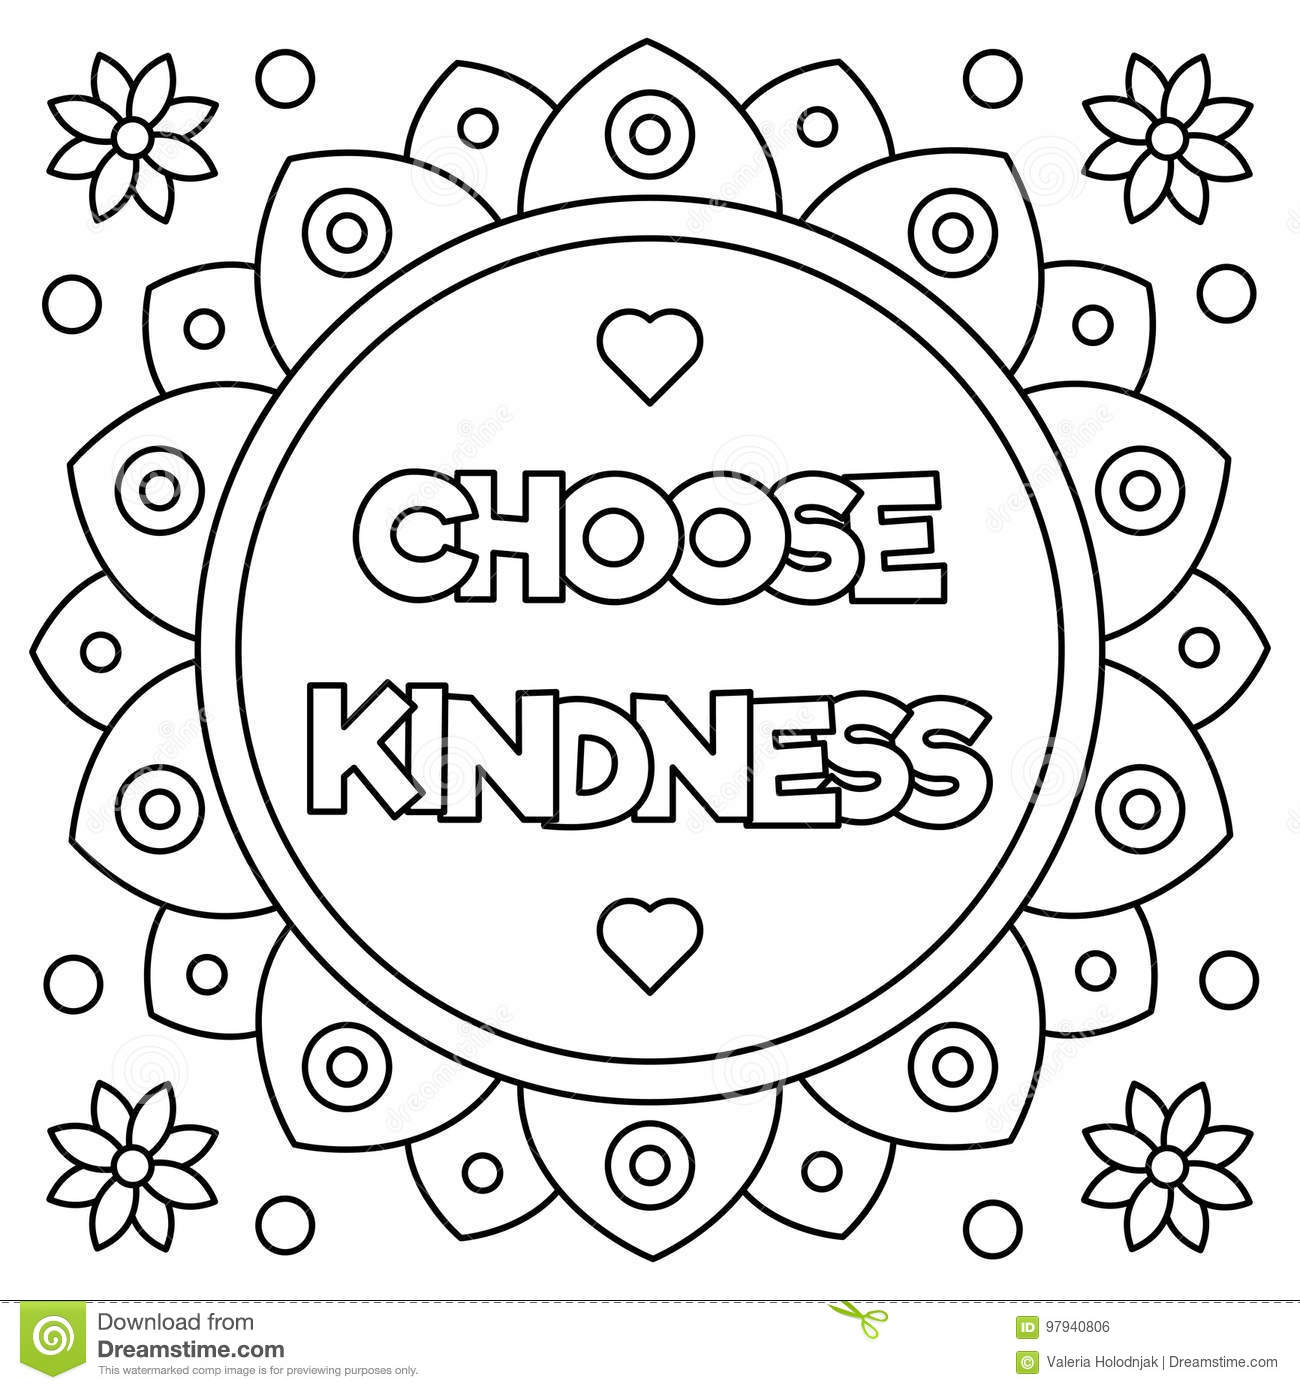 Choose Kindness Coloring Page Vector Illustration Stock